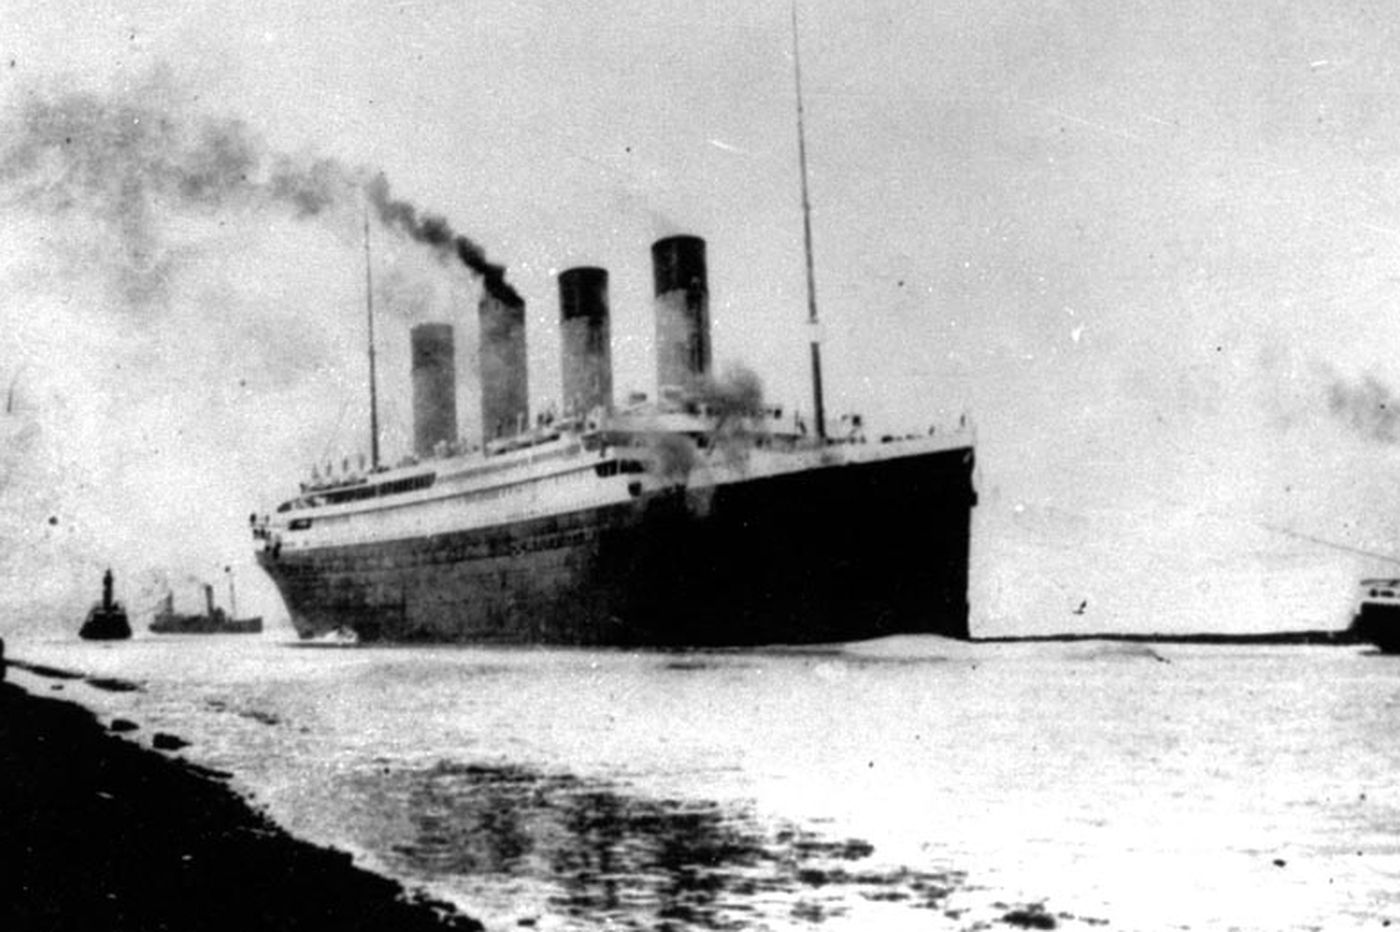 The Titanic's heroic men — and the people who still honor them 107 years later